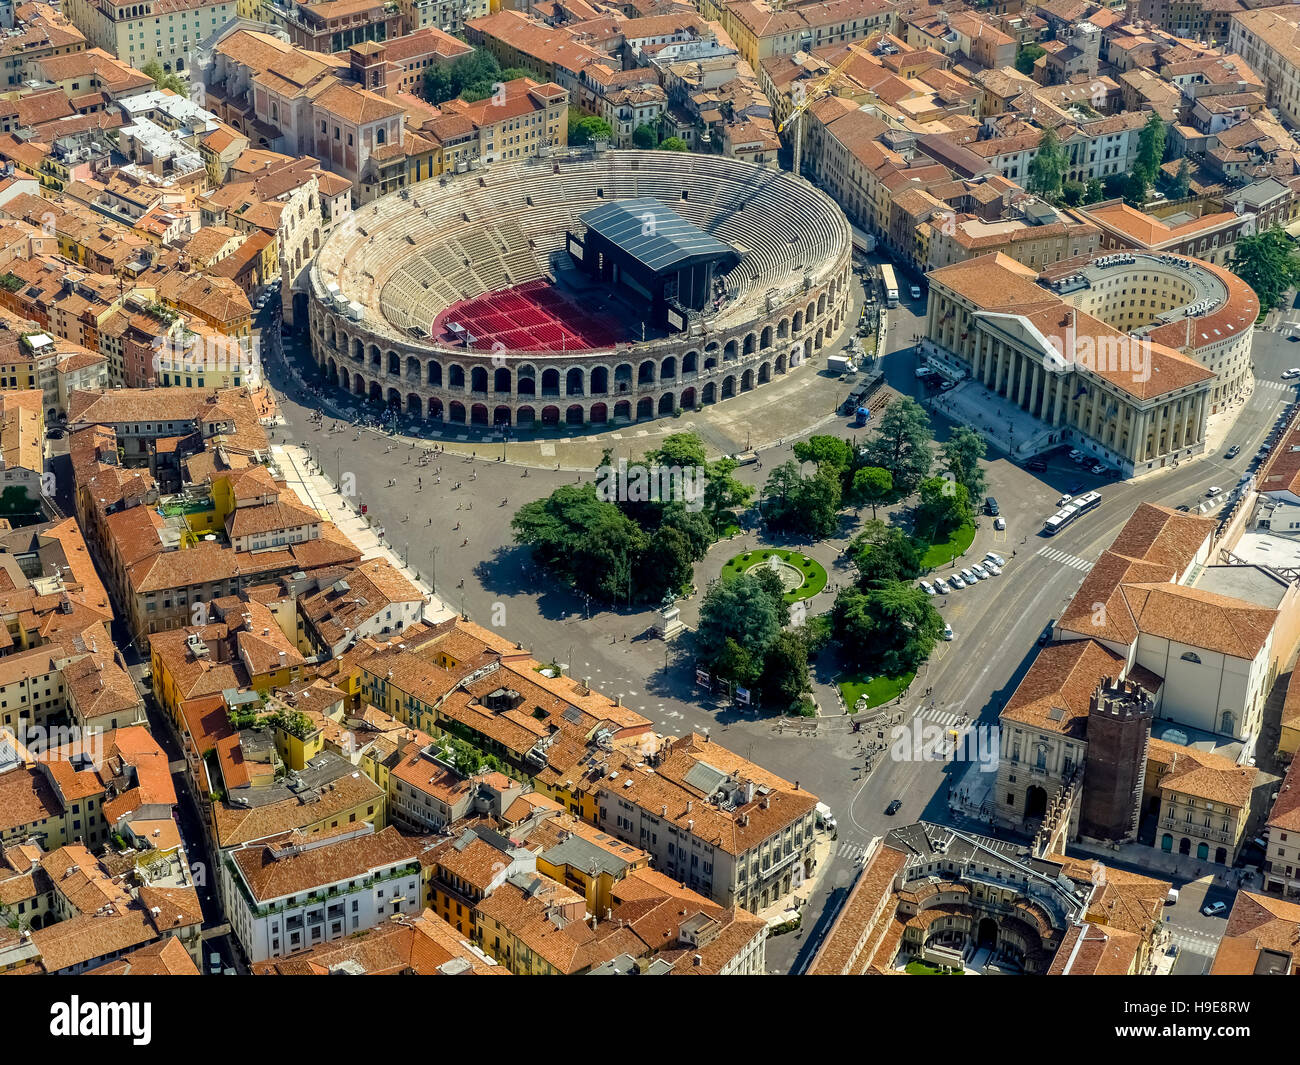 Aerial view, Barbieri Palace, Palazzo Barbieri, Arena di Verona, Piazza Bra, Roman amphitheater, the city center - Stock Image